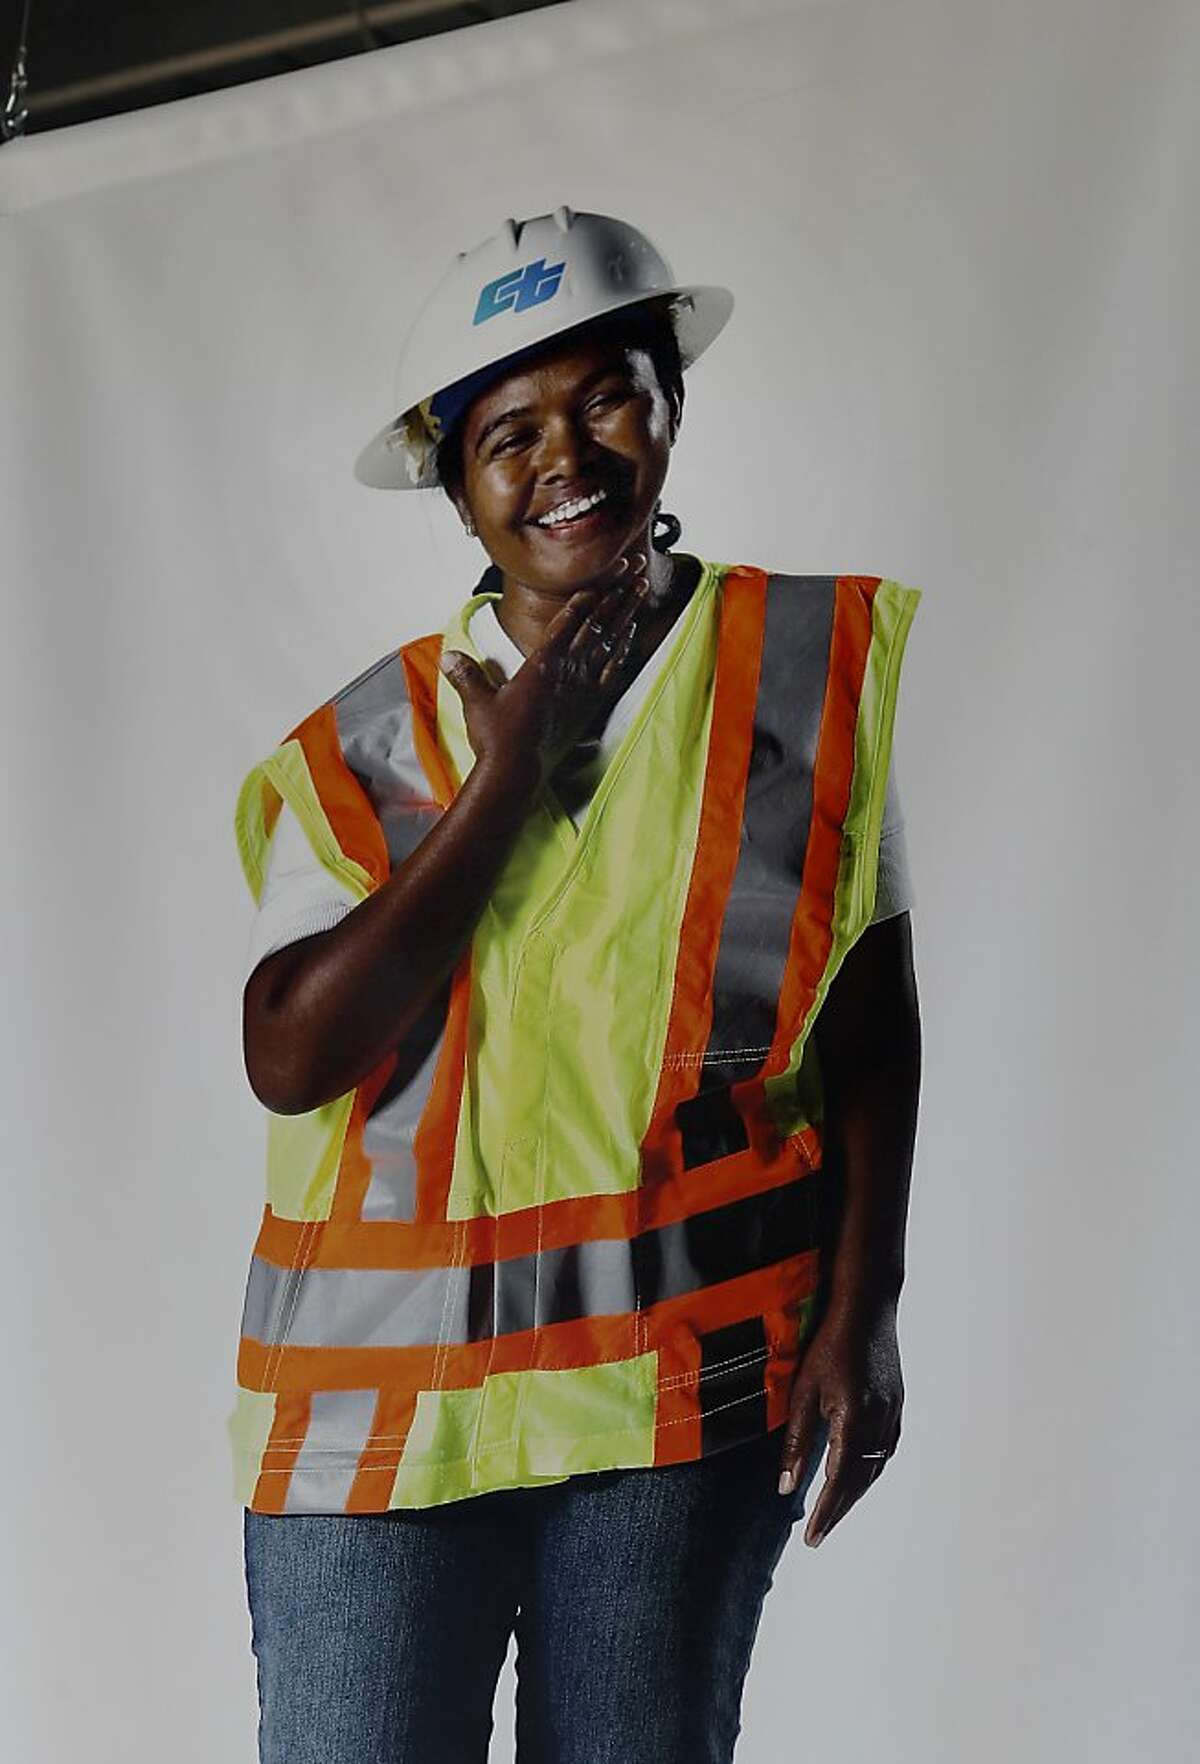 Masti Bogale, a bridge inspector, attended the ceremony and had her picture hanging from the rafters Monday September 2, 2013. The celebration for the opening of the eastern span of the Bay Bridge began with a ceremony in the Bridge Yard building near the toll plaza.